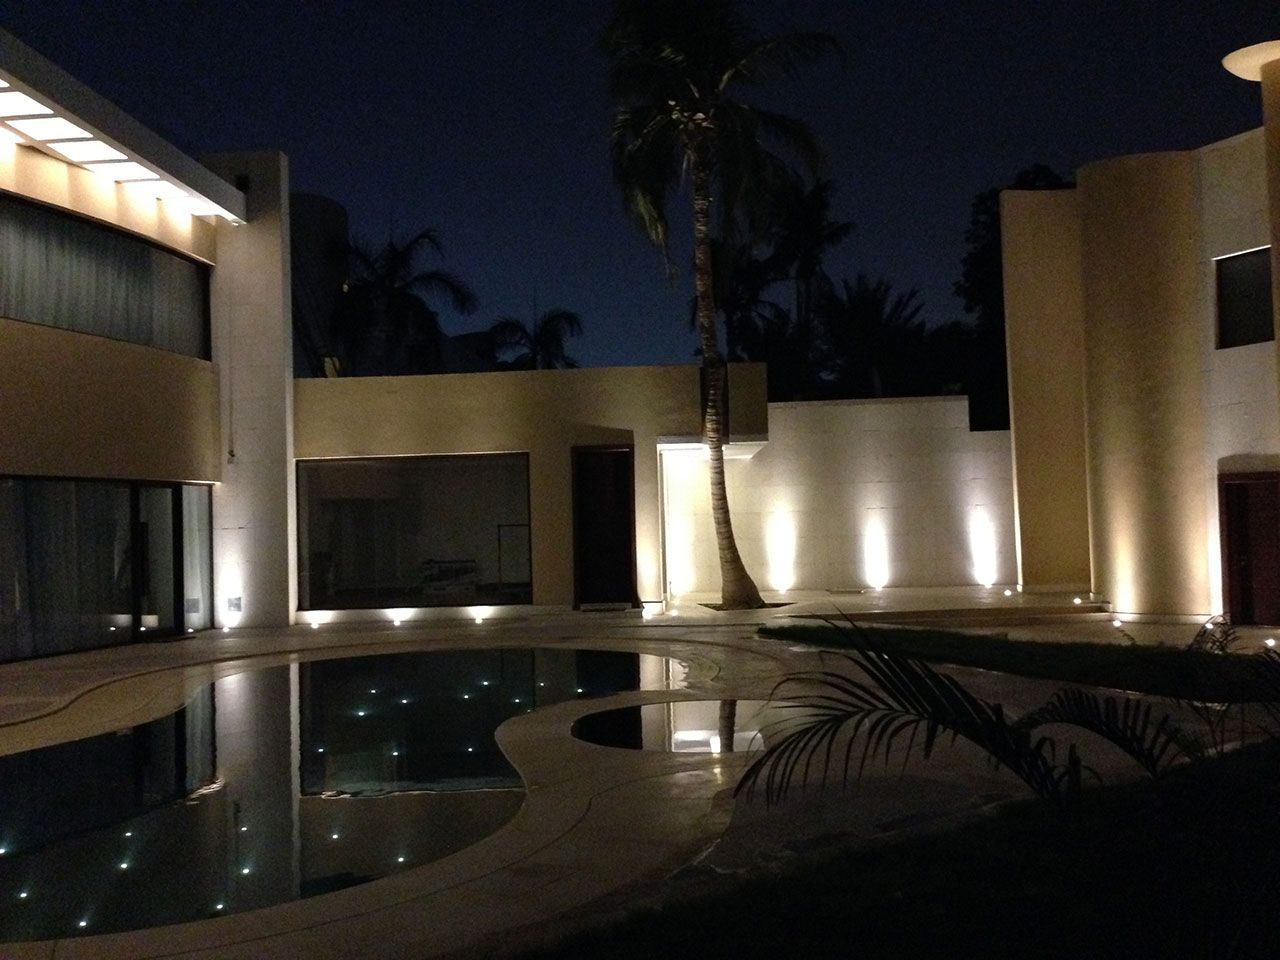 Private villa jeddah saudi arabia project by arch mohammad mahmoud azizi featured products by ll lucelight bright 1 0 316l